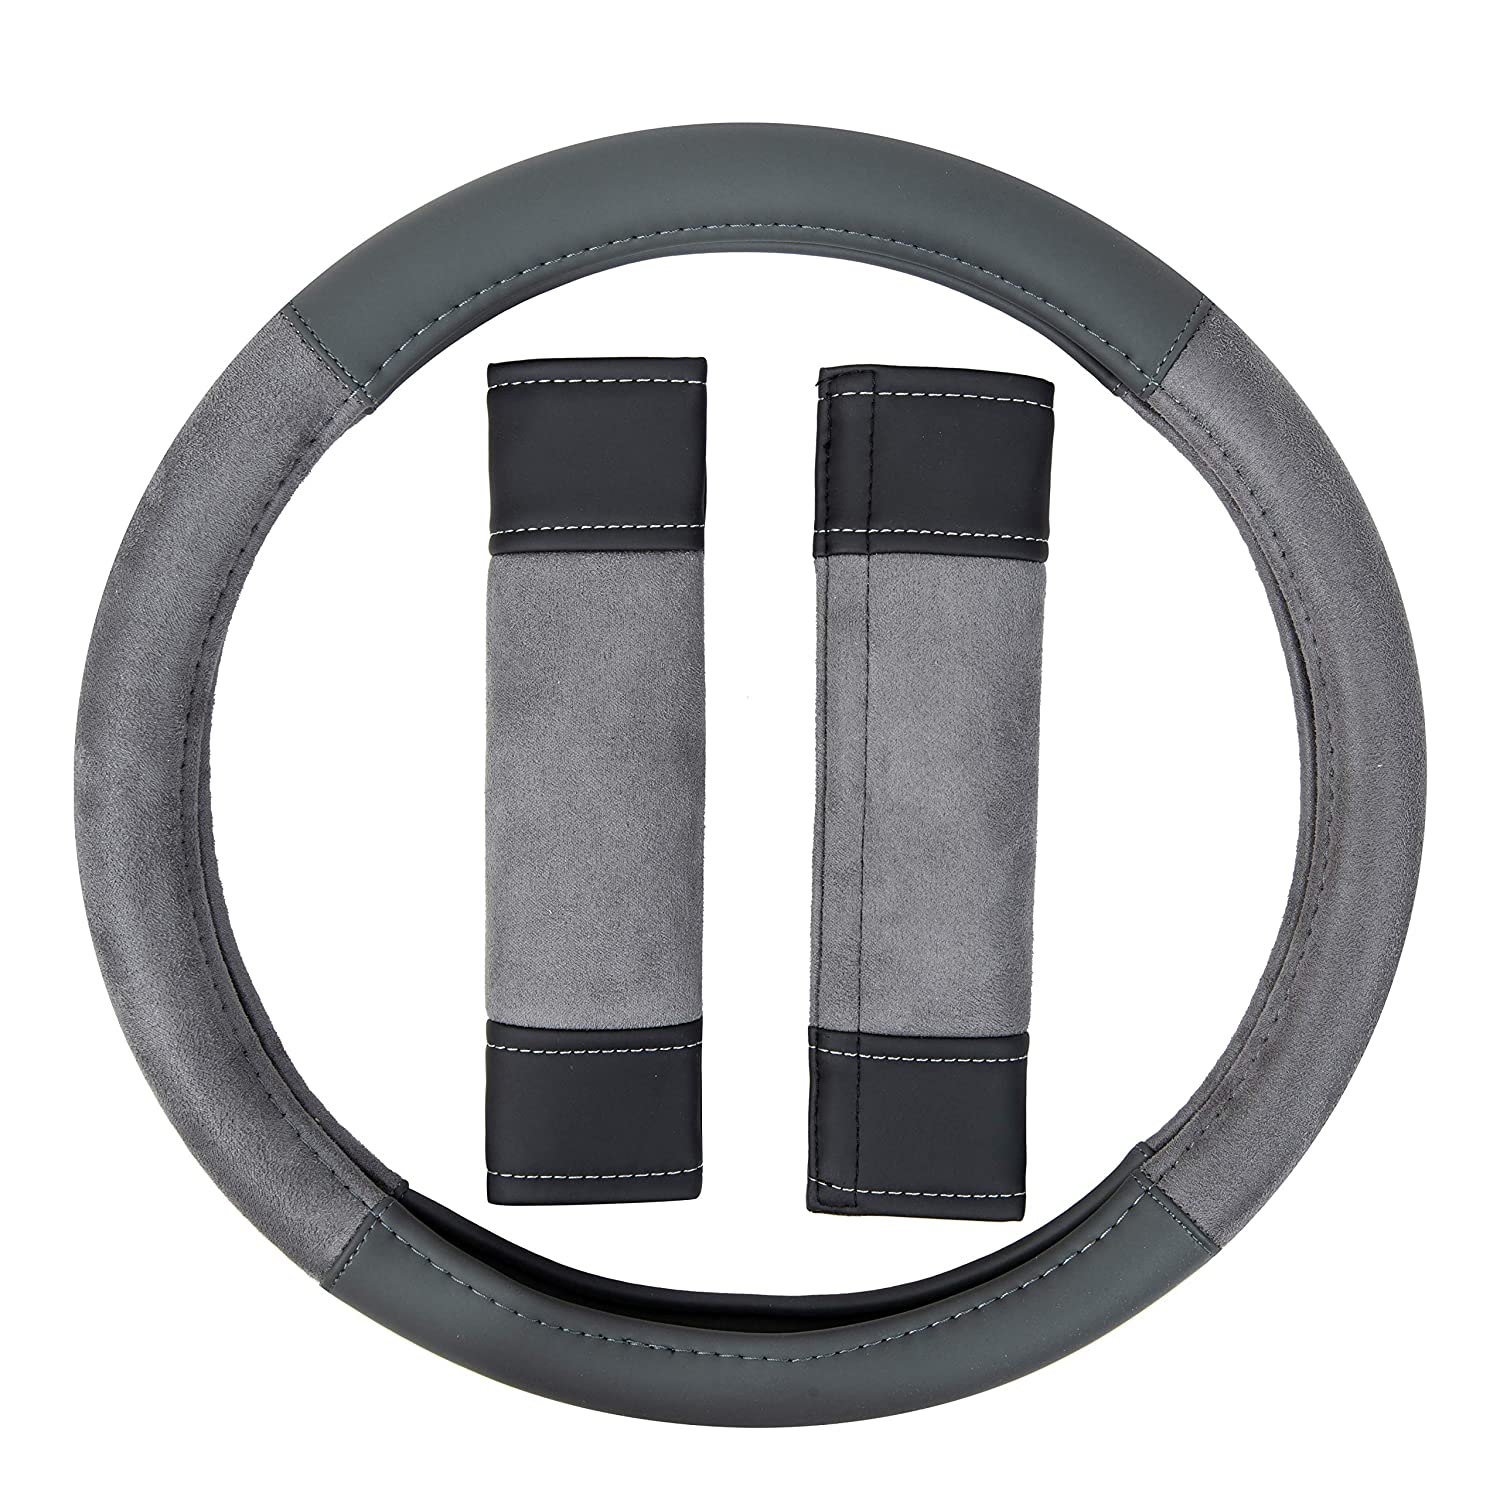 Basics Leatherette and Suede 15/″ Steering Wheel Cover and Seatbelt Pads Gray